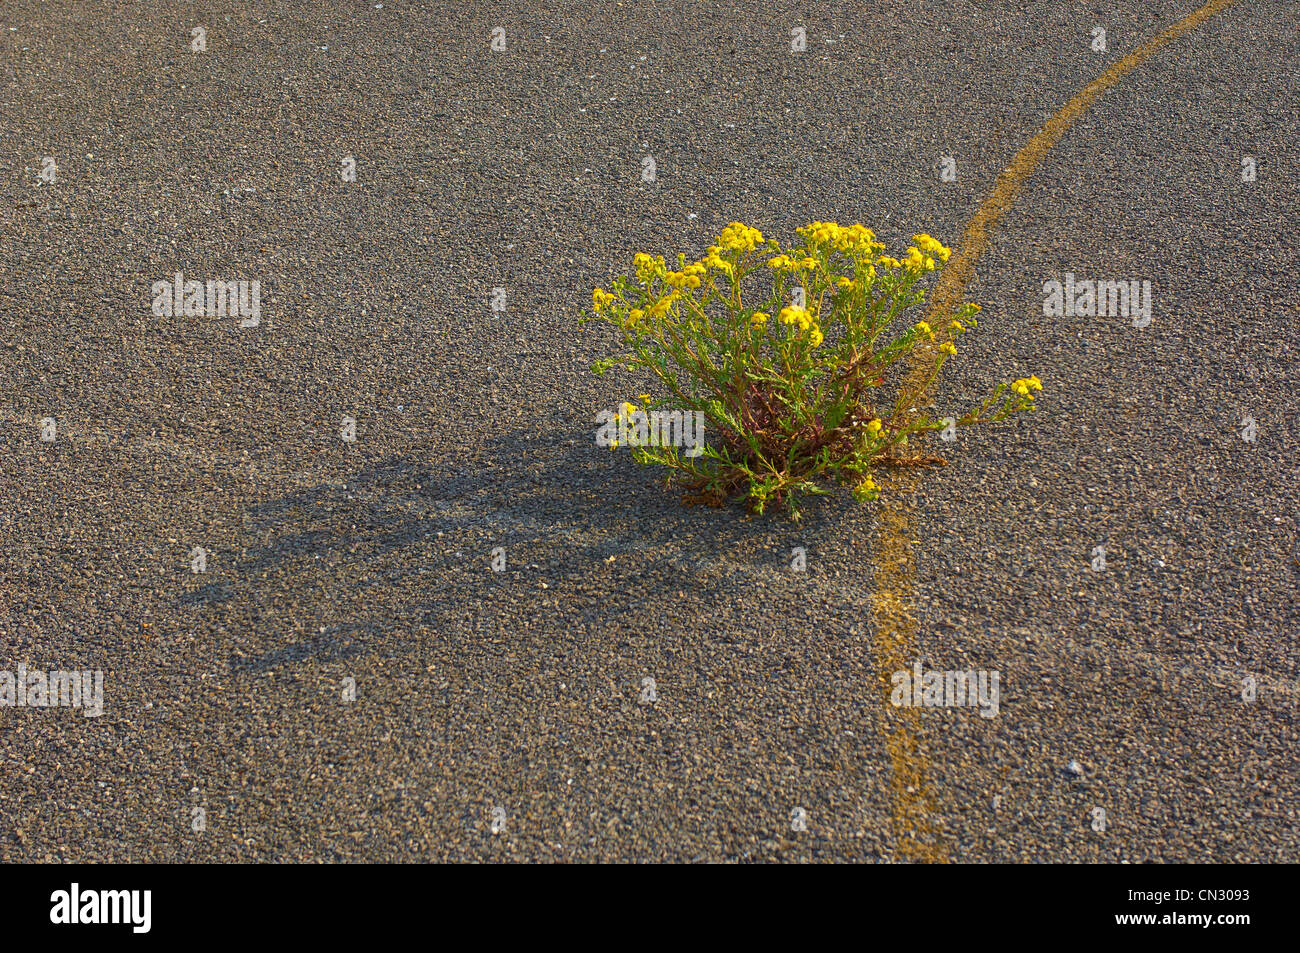 Plant growing through old school yard - Stock Image